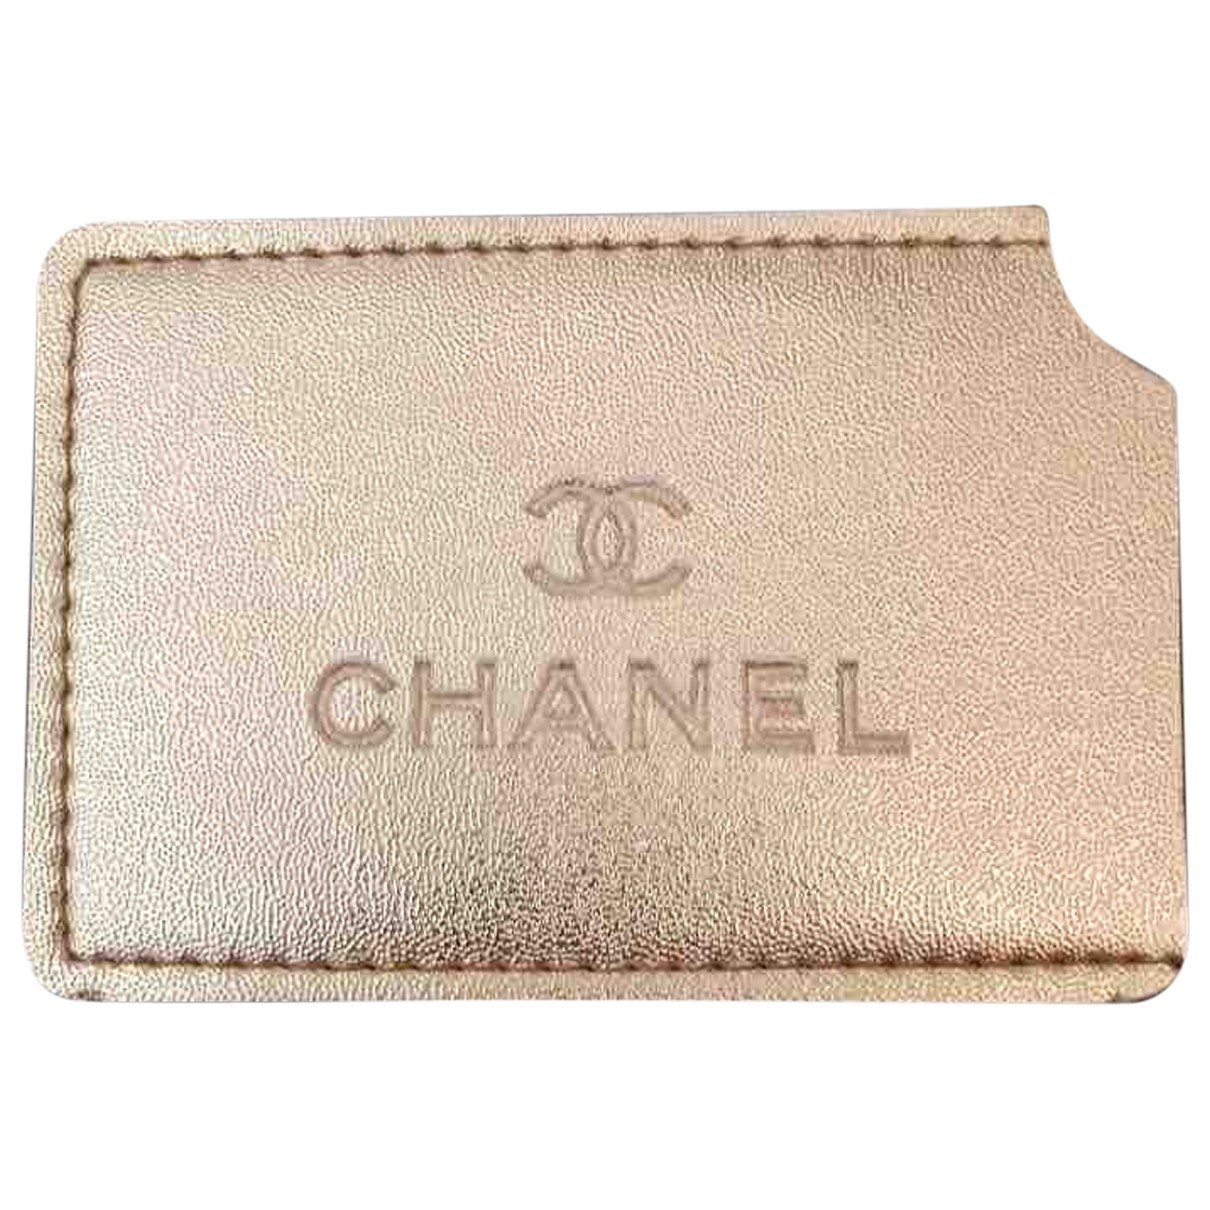 Chanel \N Accessoires und Dekoration in  Gold Synthetik